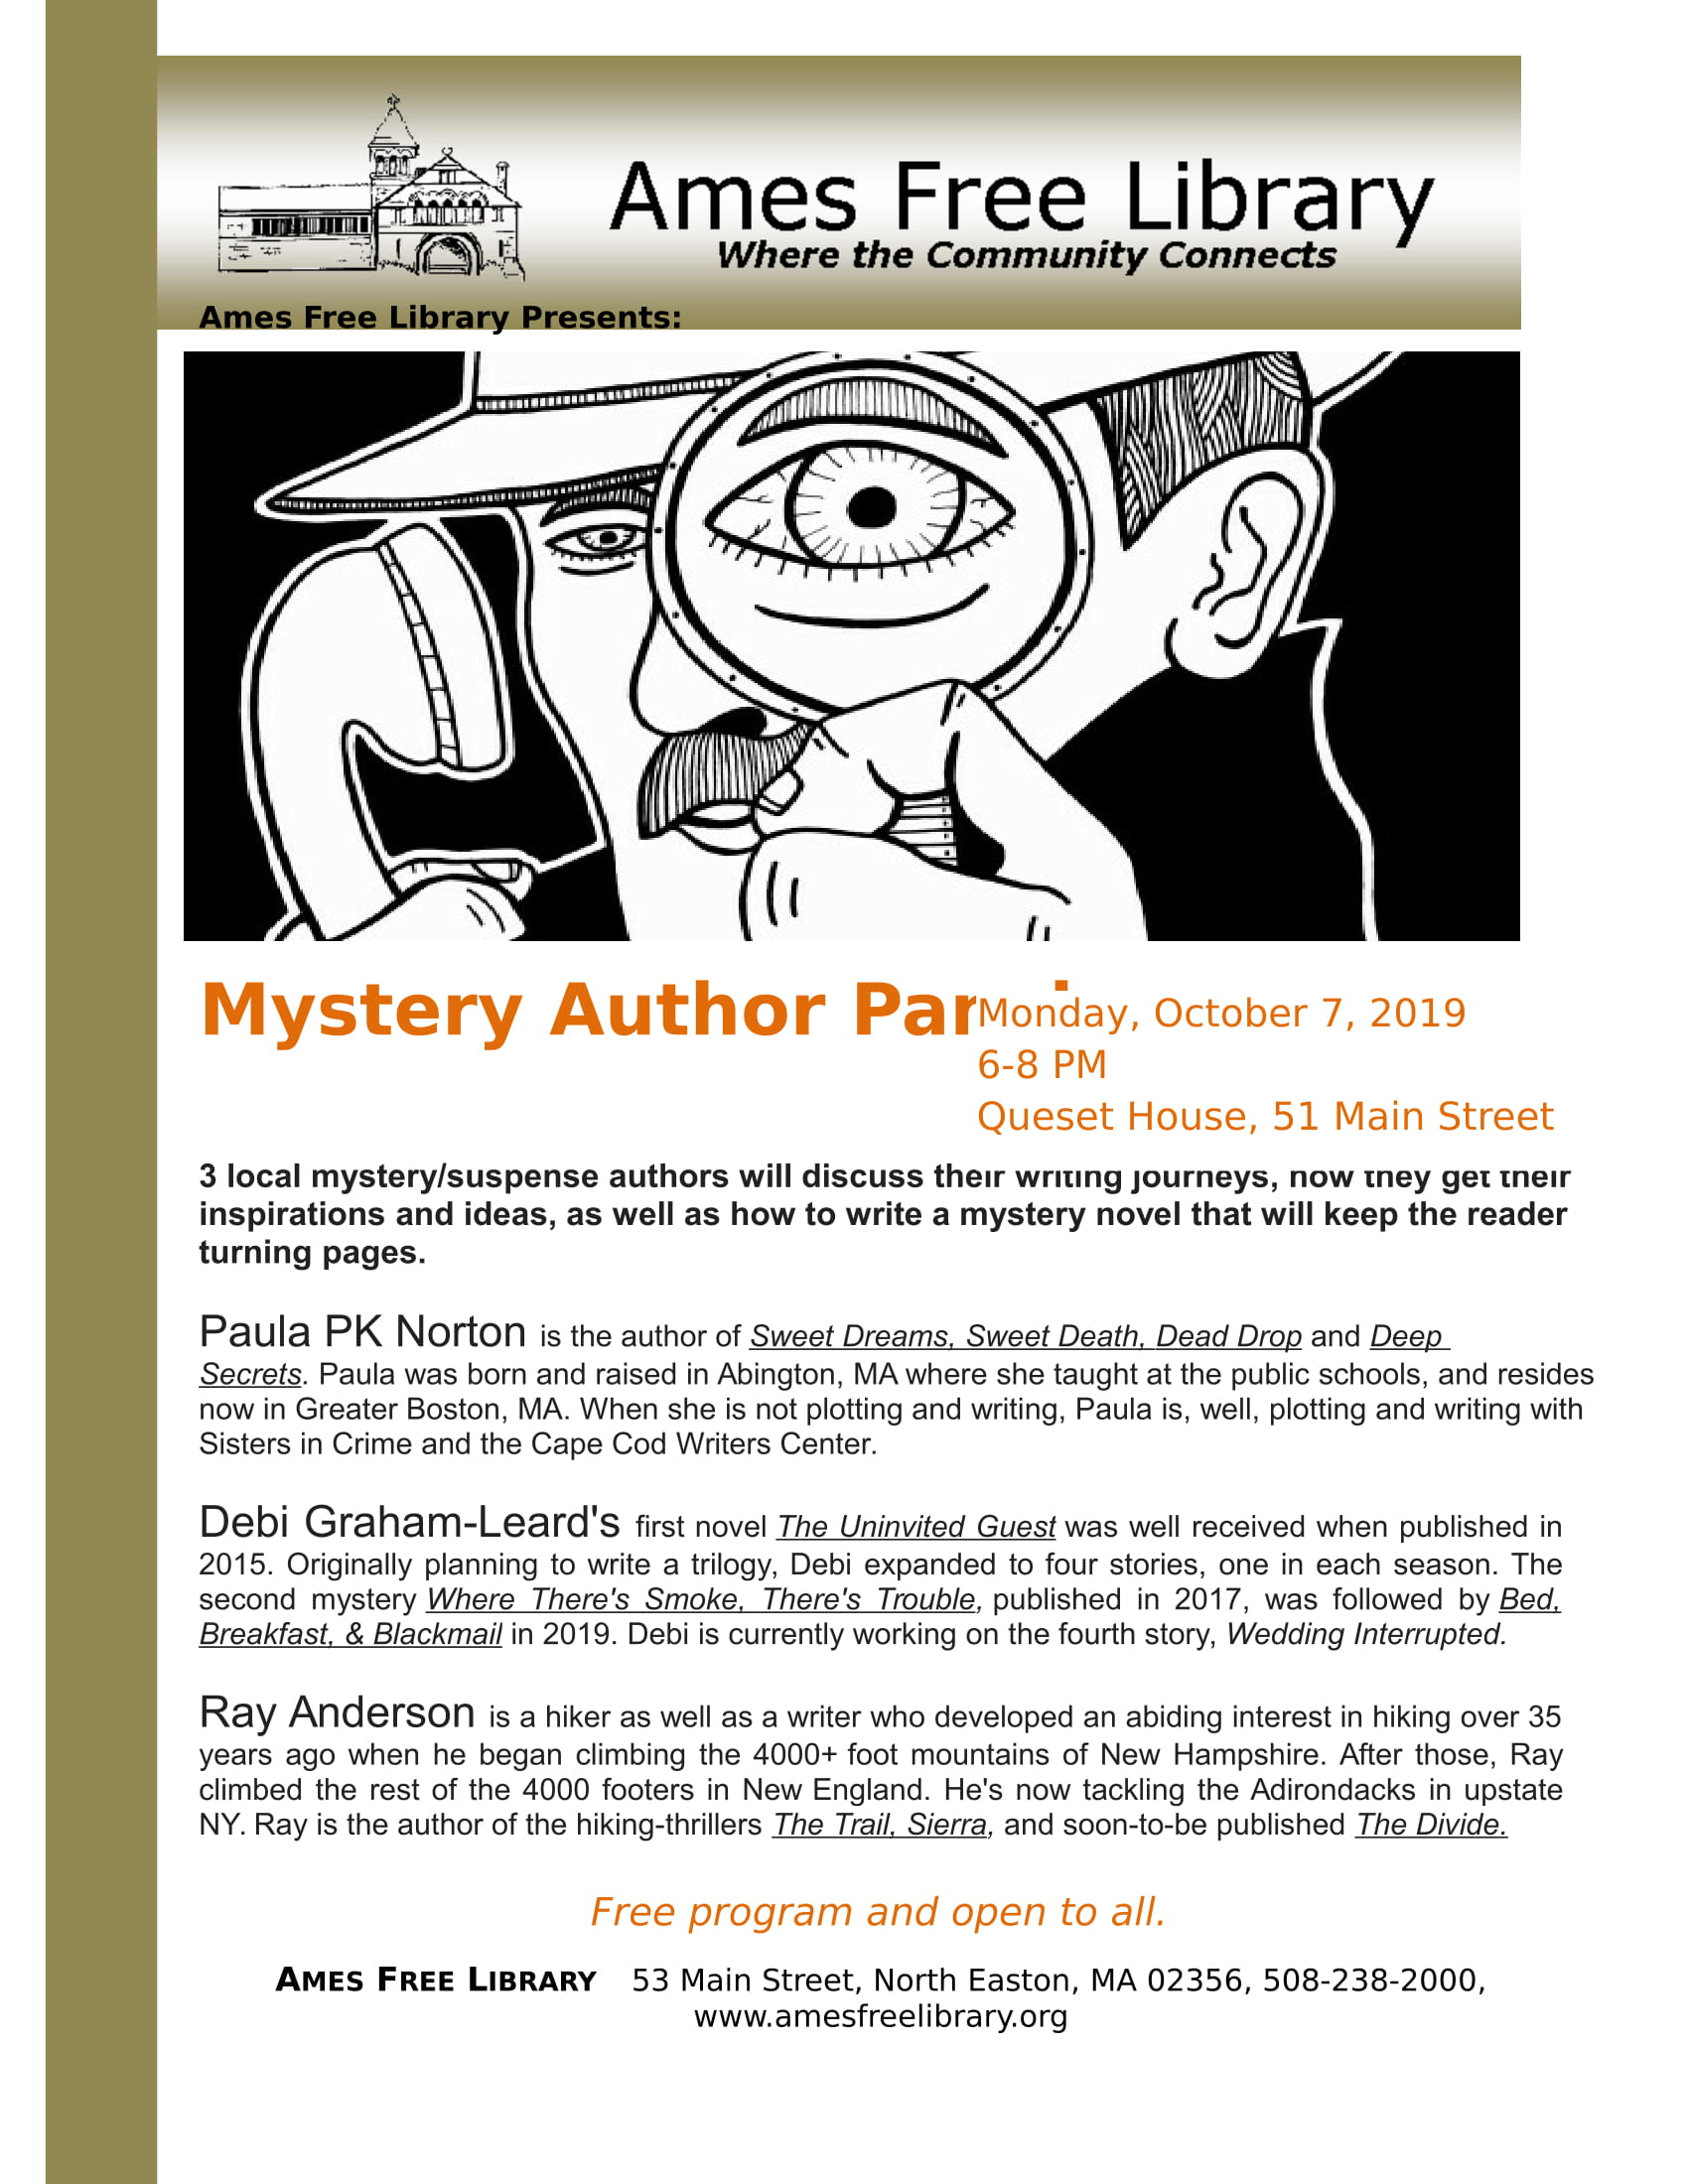 Mystery Author Panel Flyer AMES